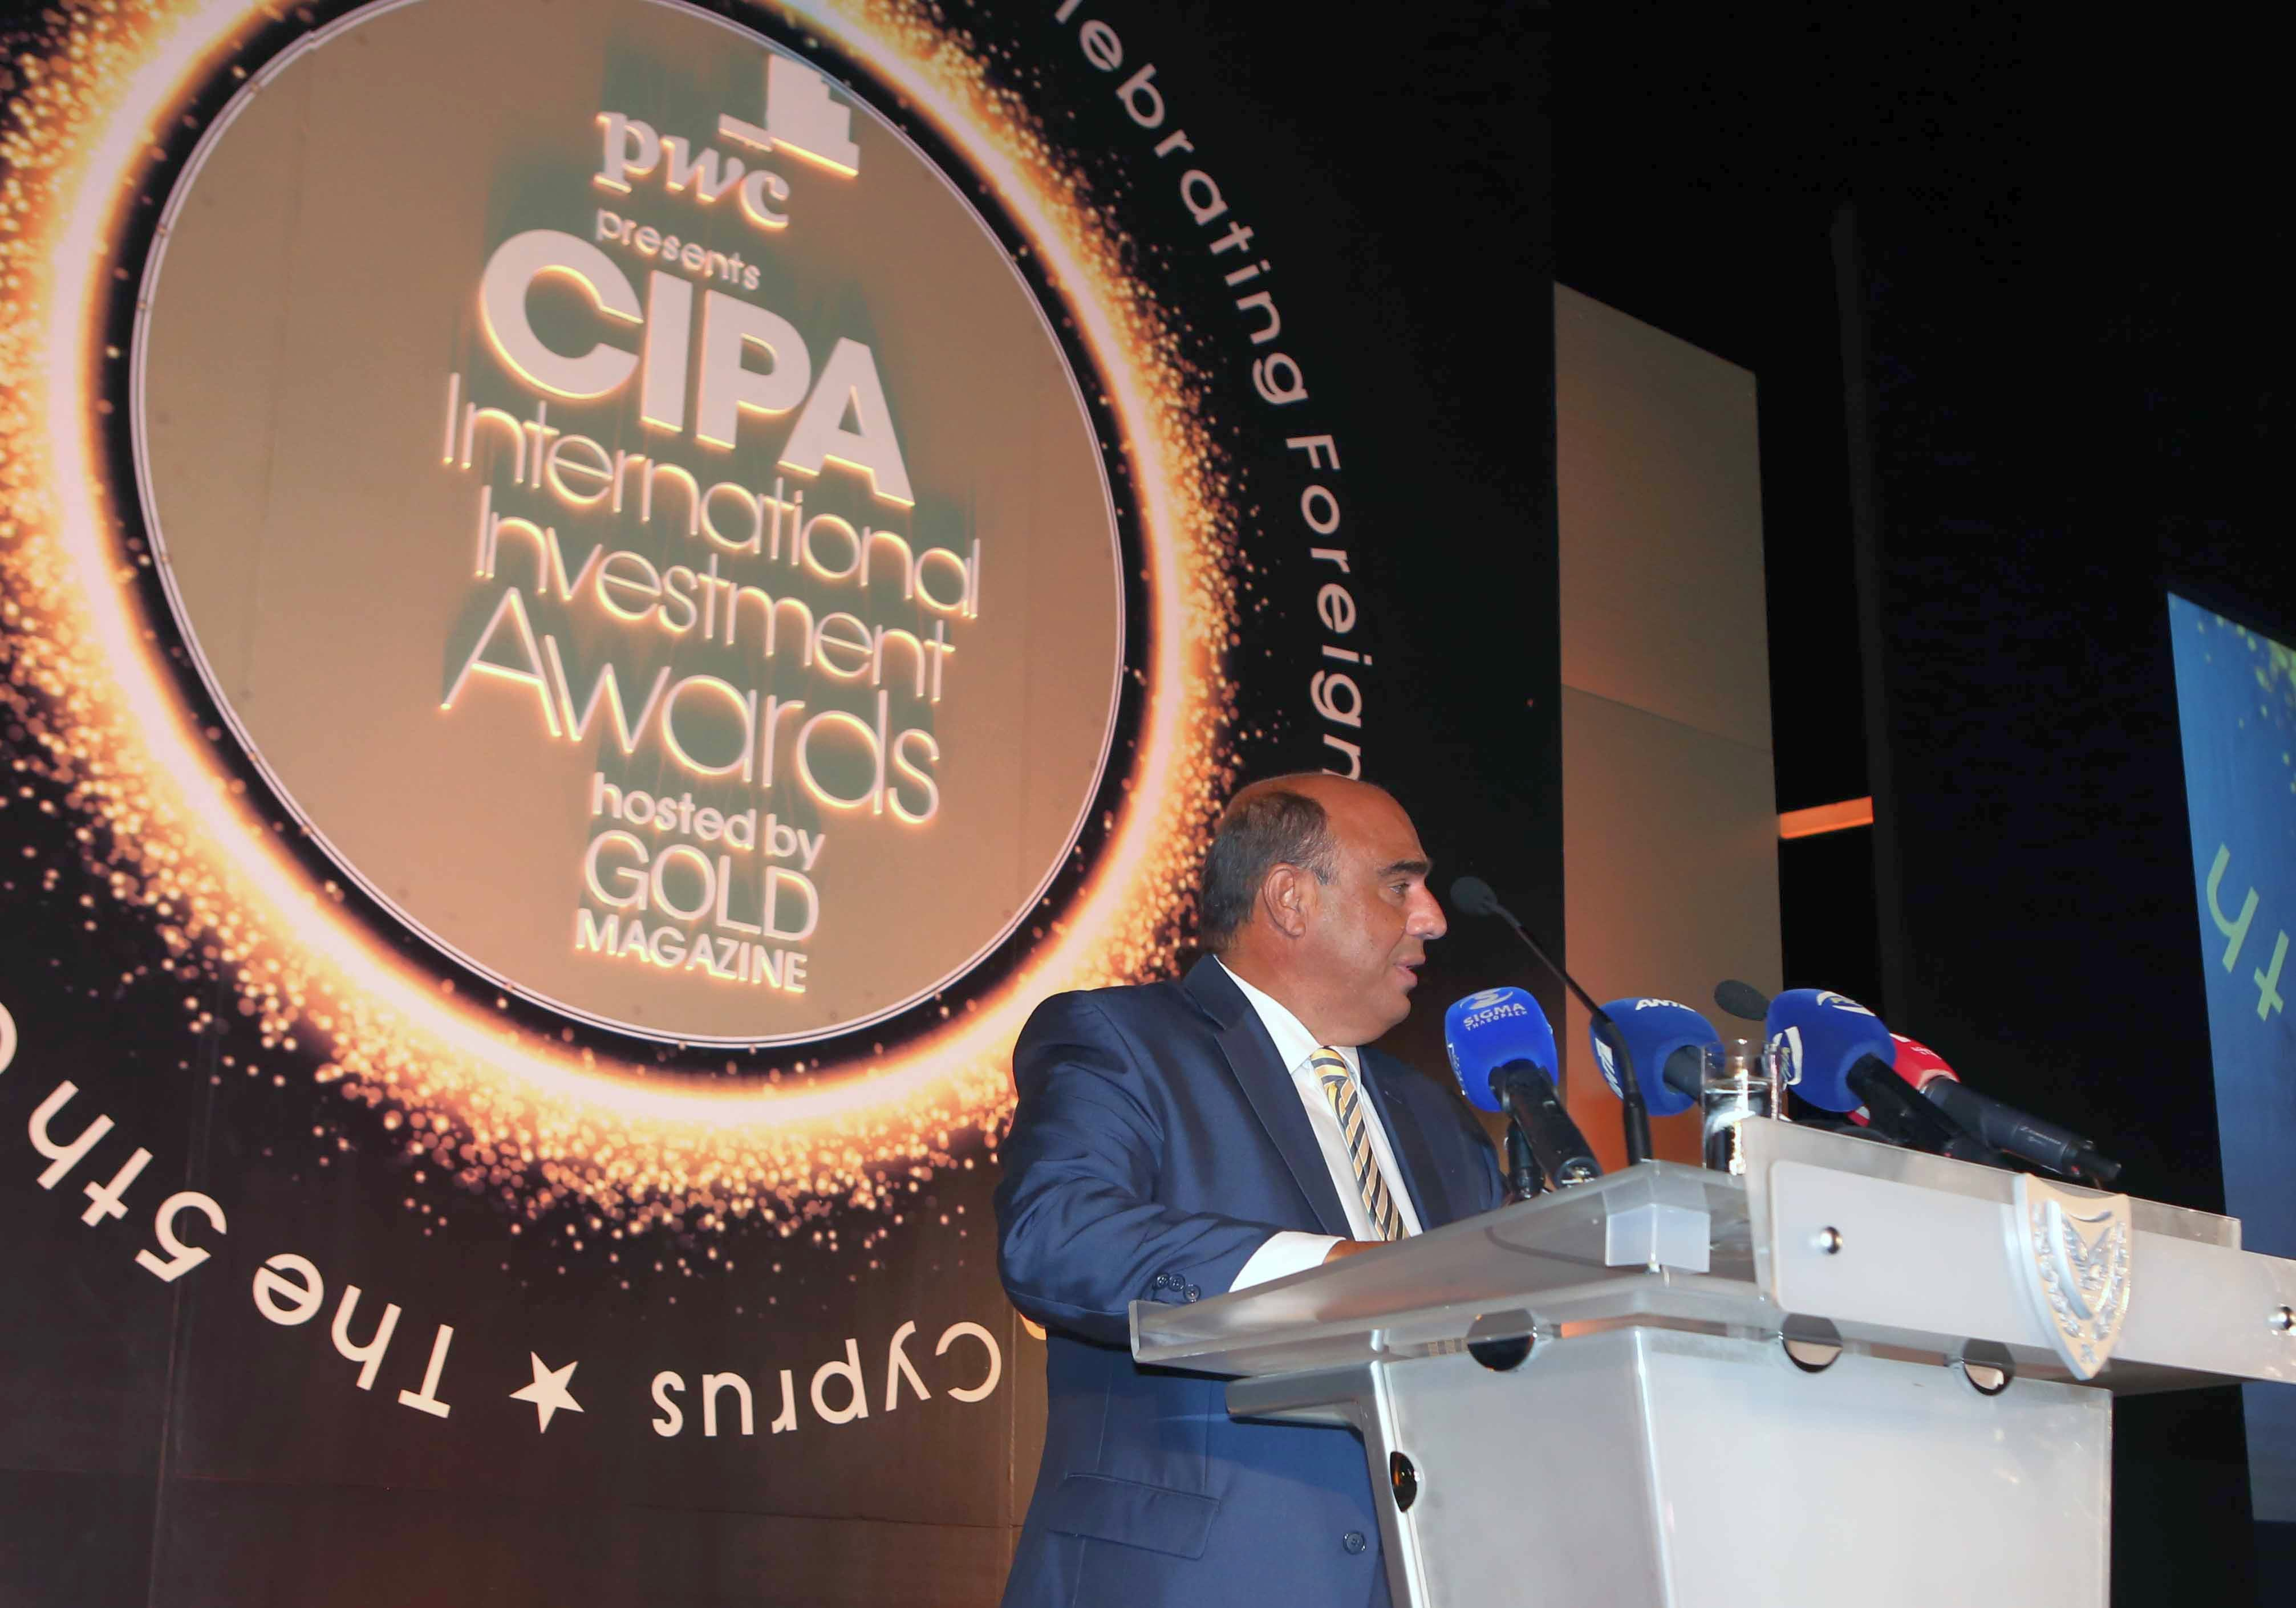 5th CIPA Investment awards 3